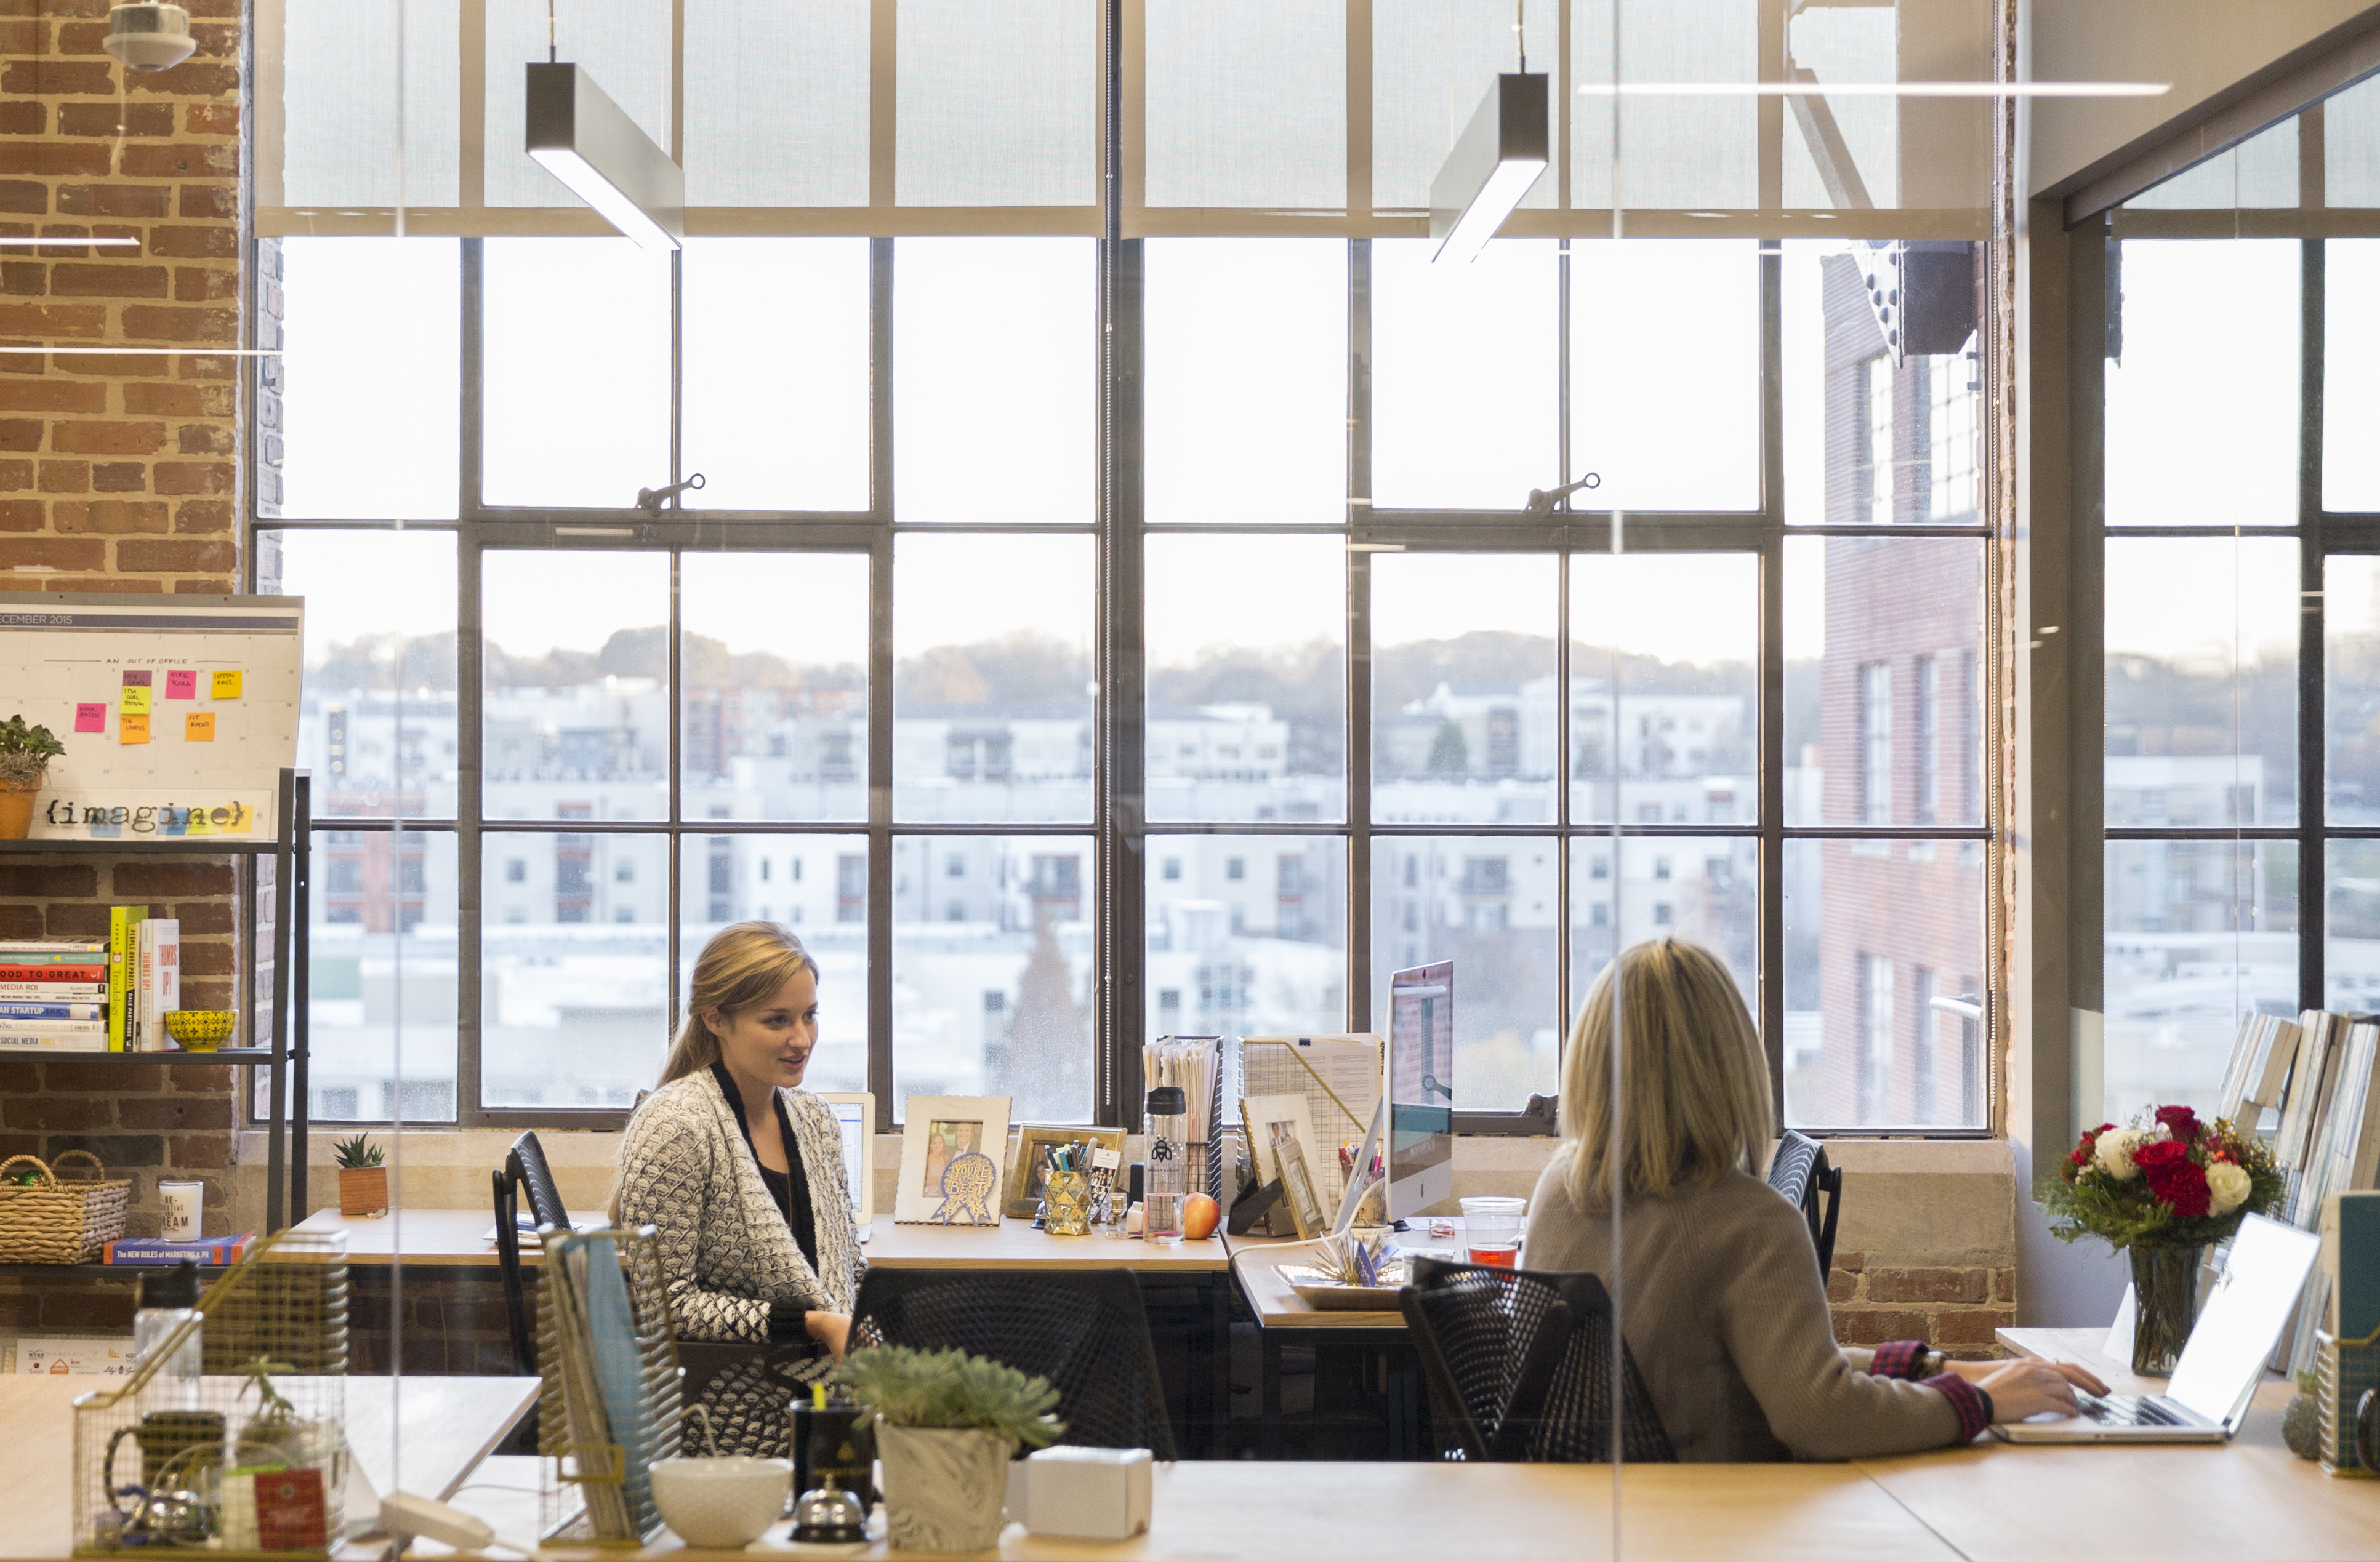 Ponce City Market welcomes more office tenants - Curbed Atlanta